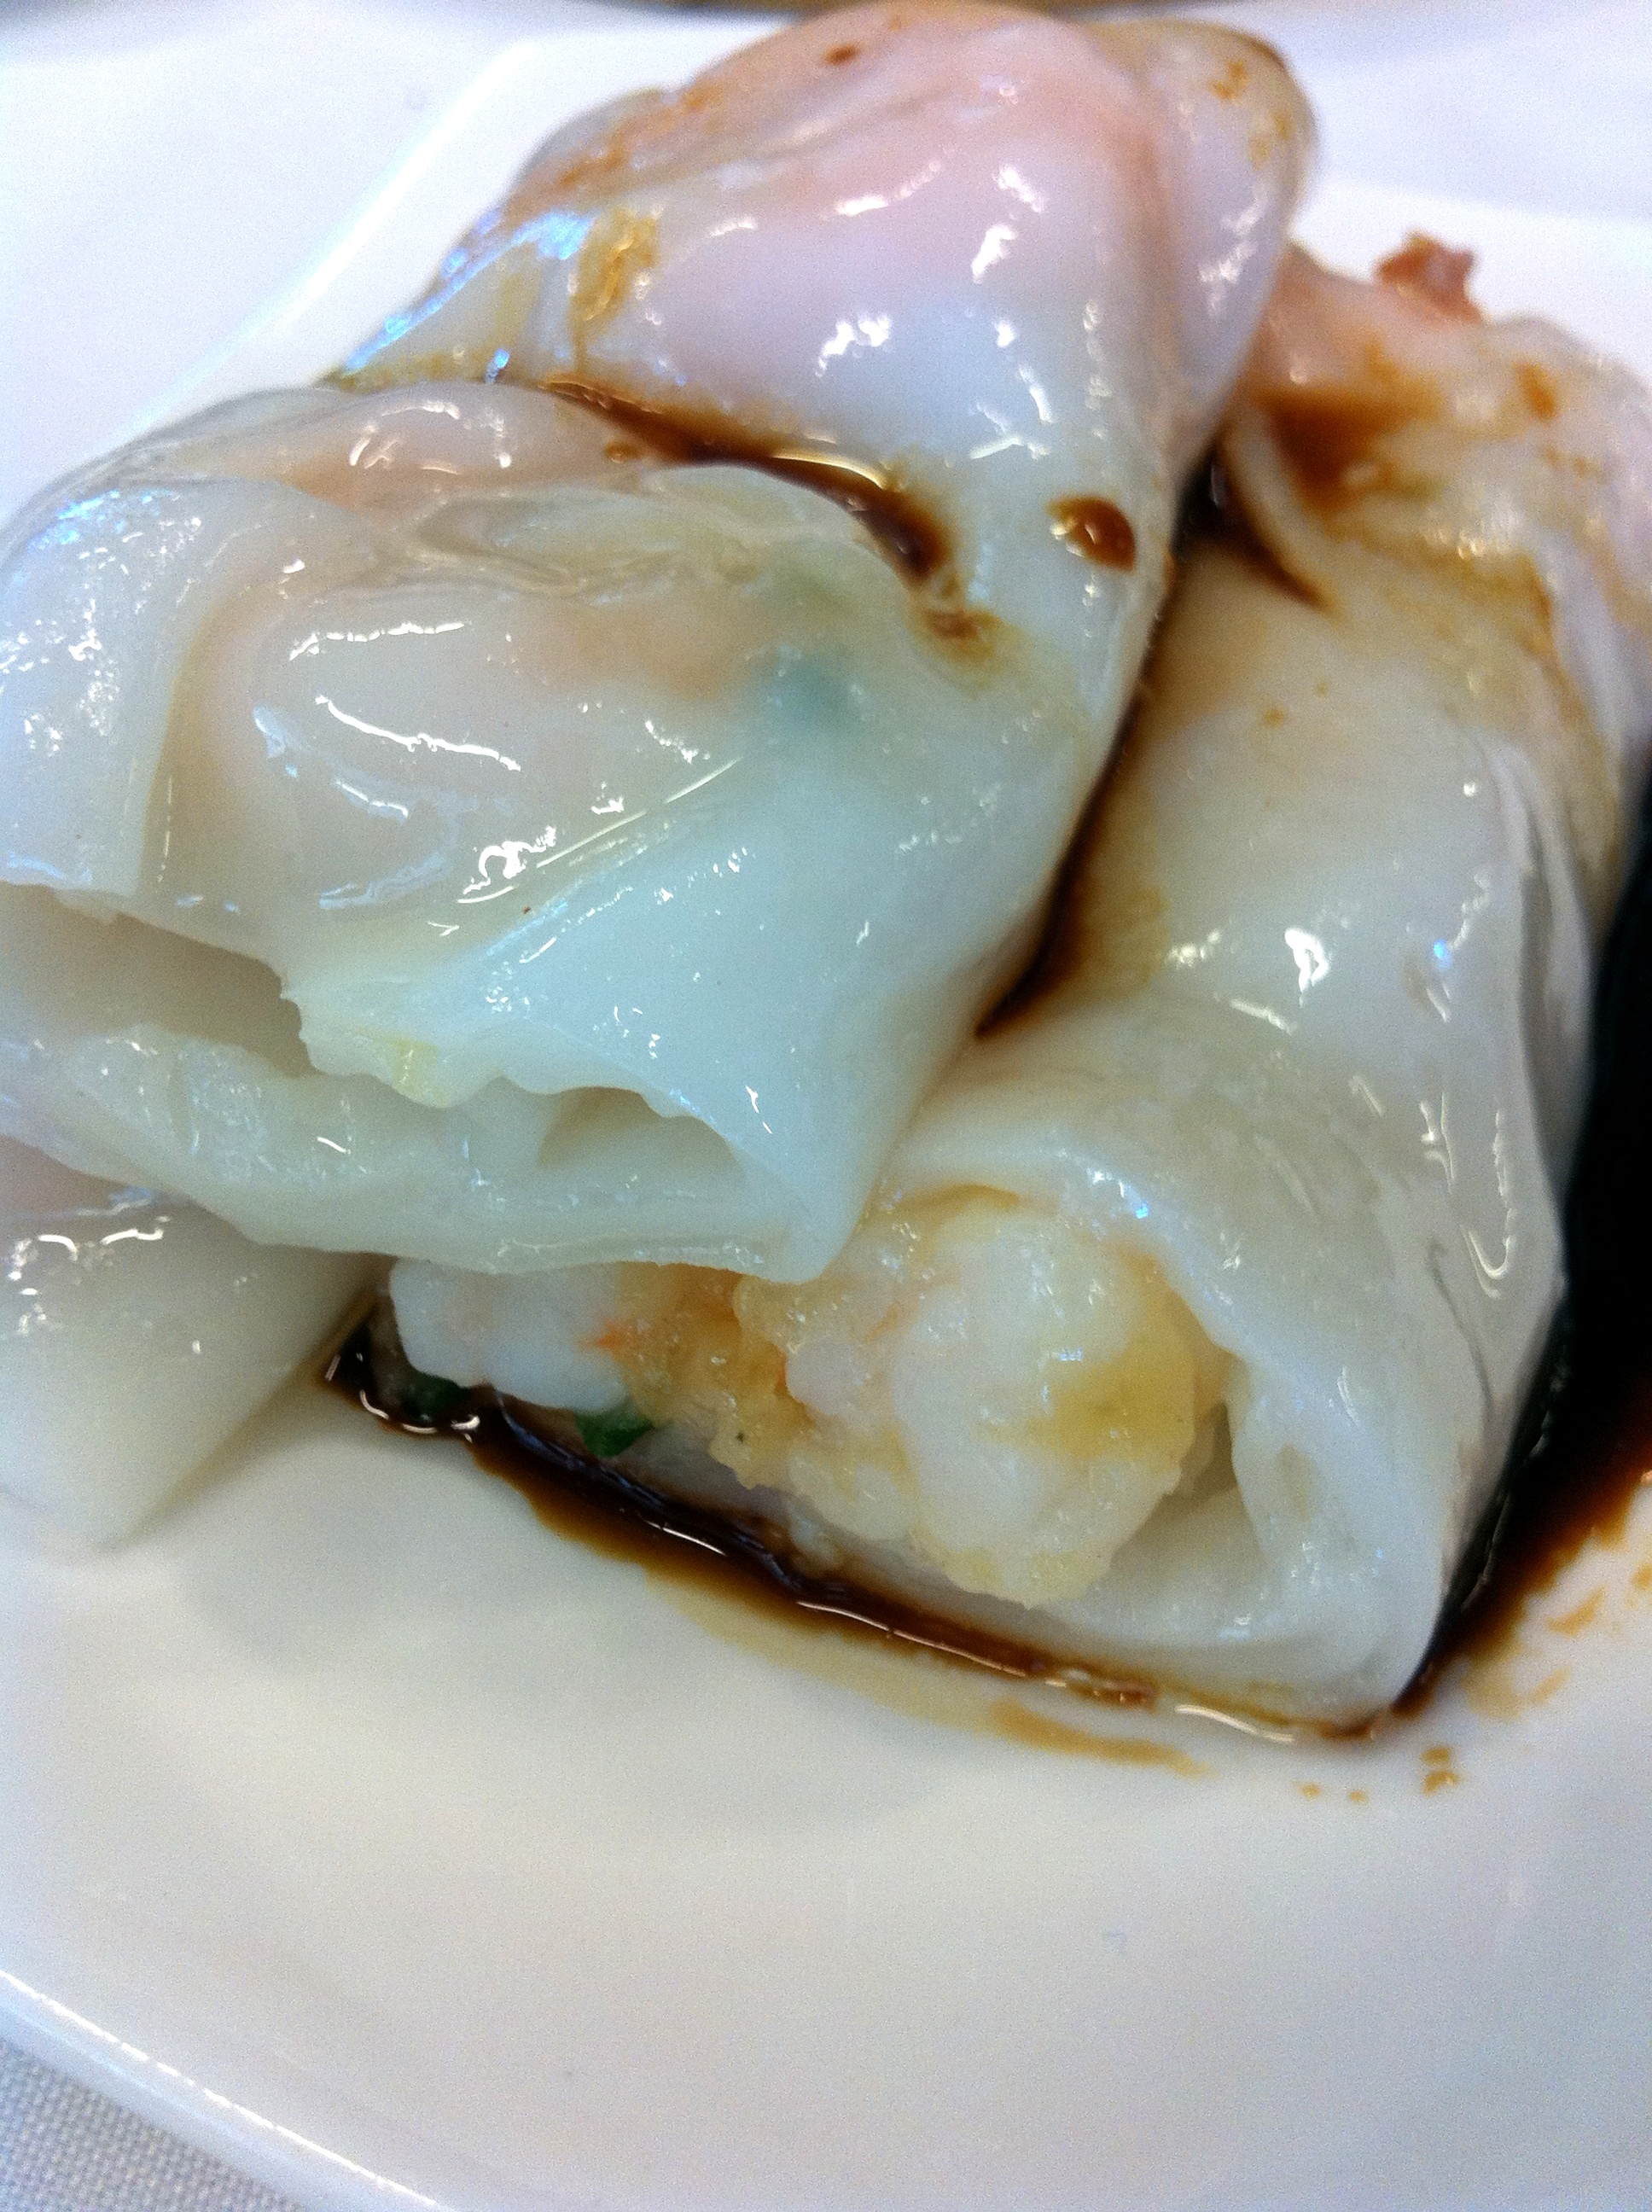 Rolled rice